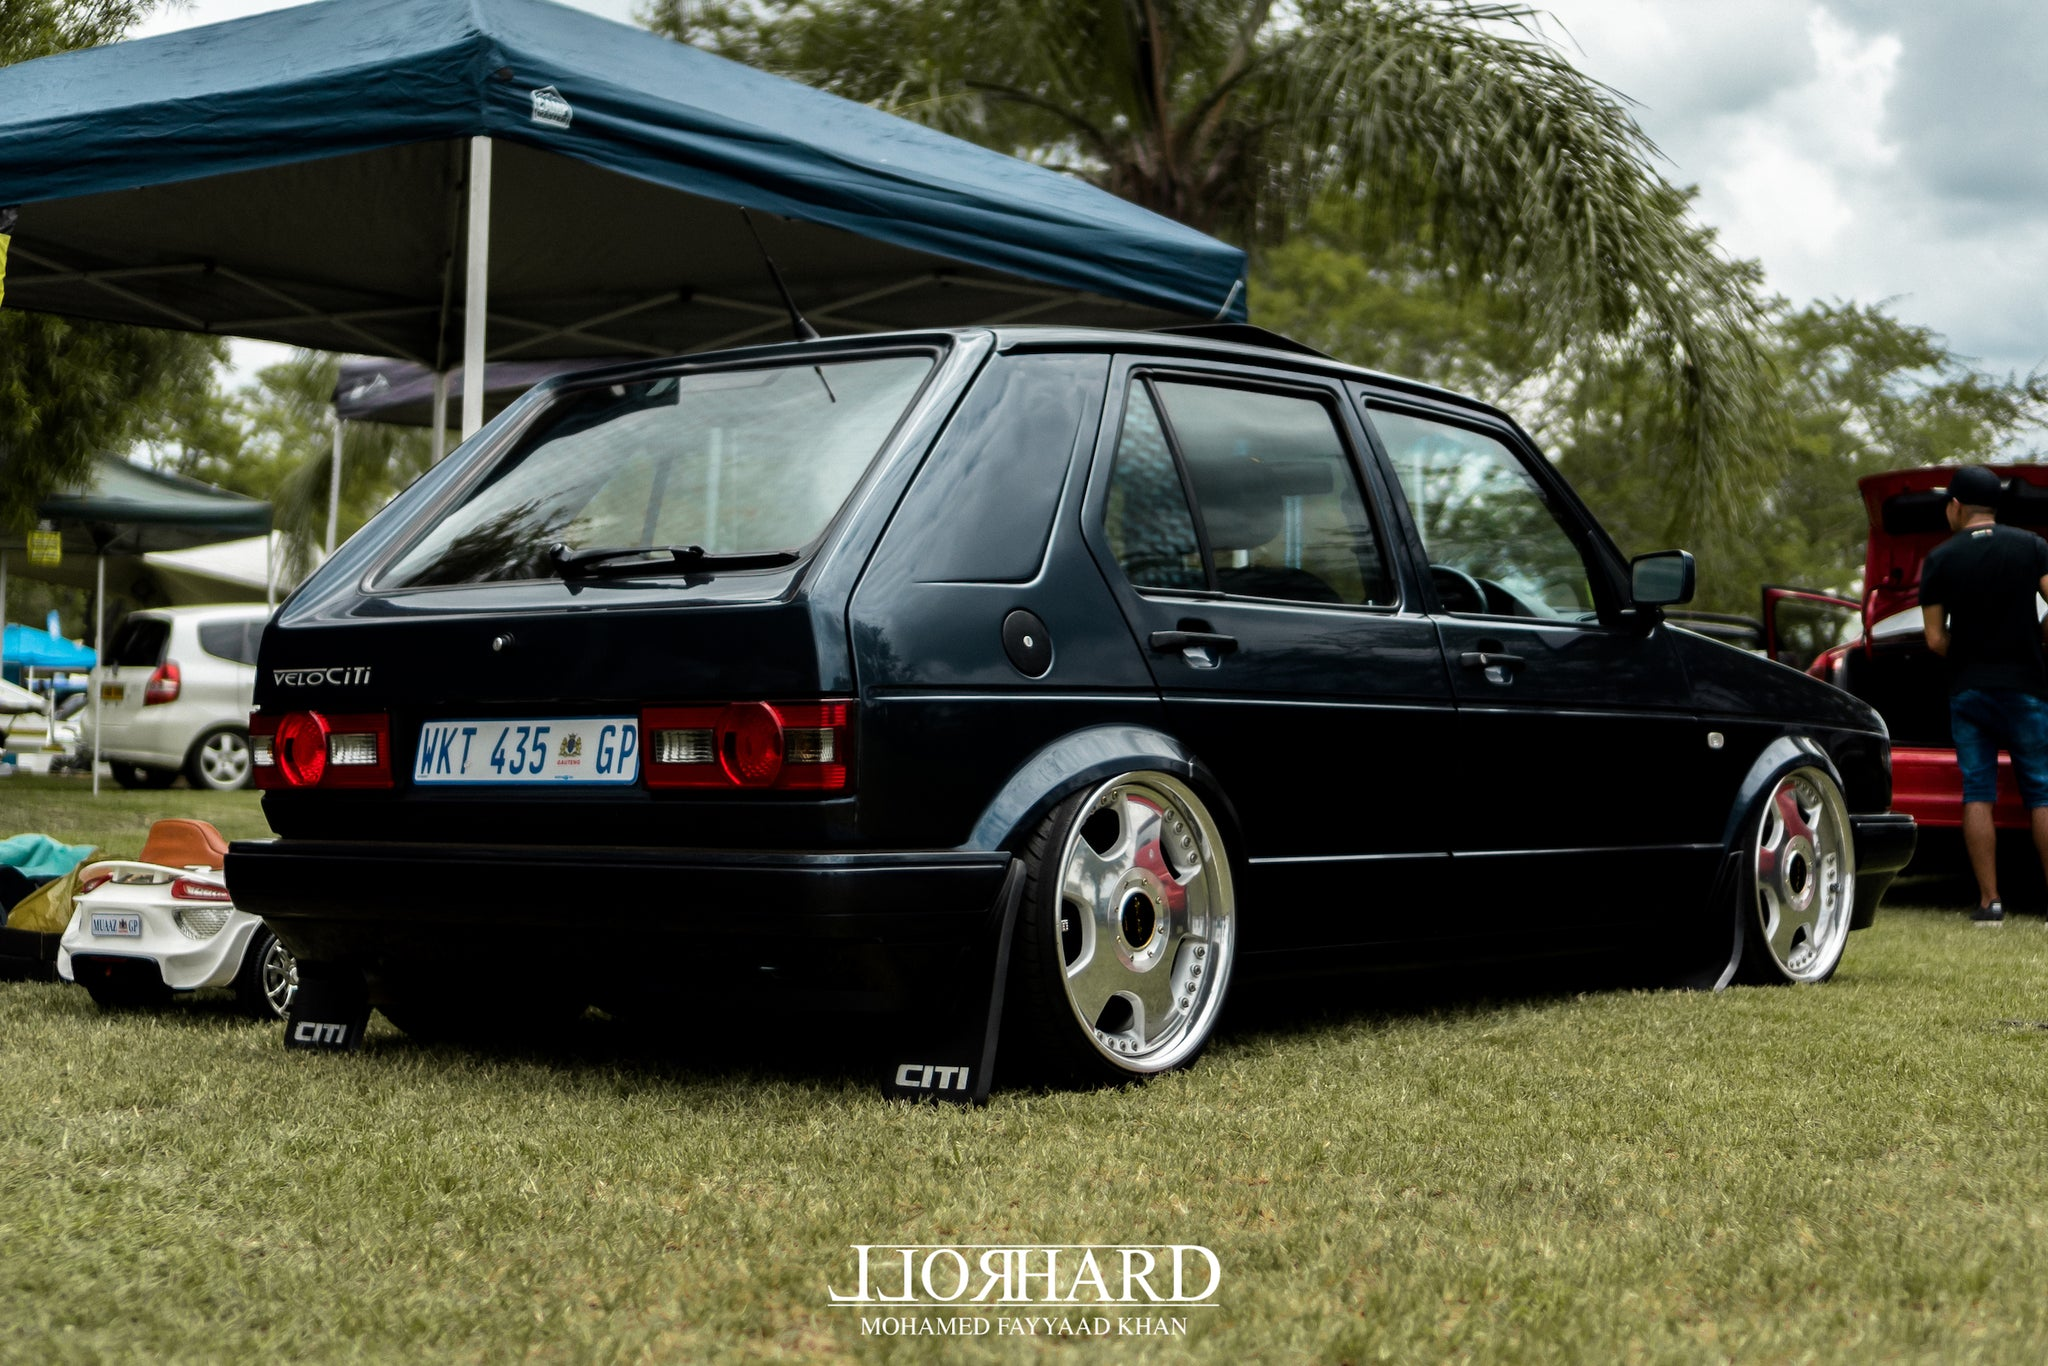 RollHard Show coverage, VDub Camp Fest 2019, South African Car Scene, modified VWs, volkswagens, veedubs,